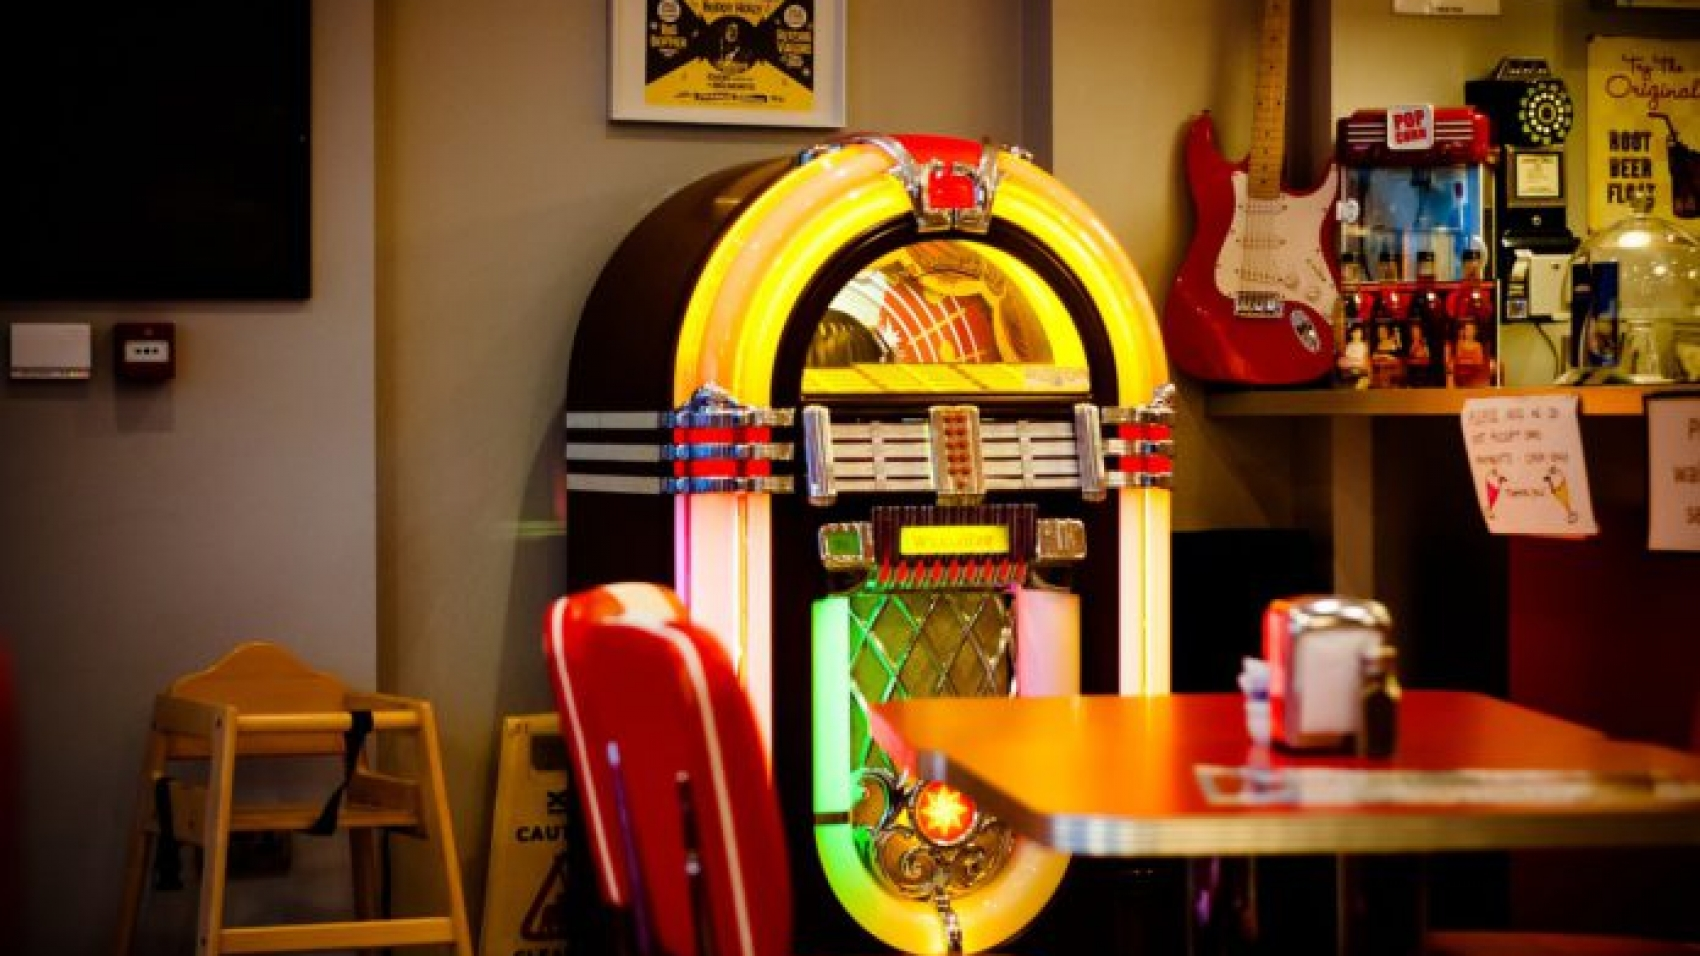 Gramola Americana o jukebox